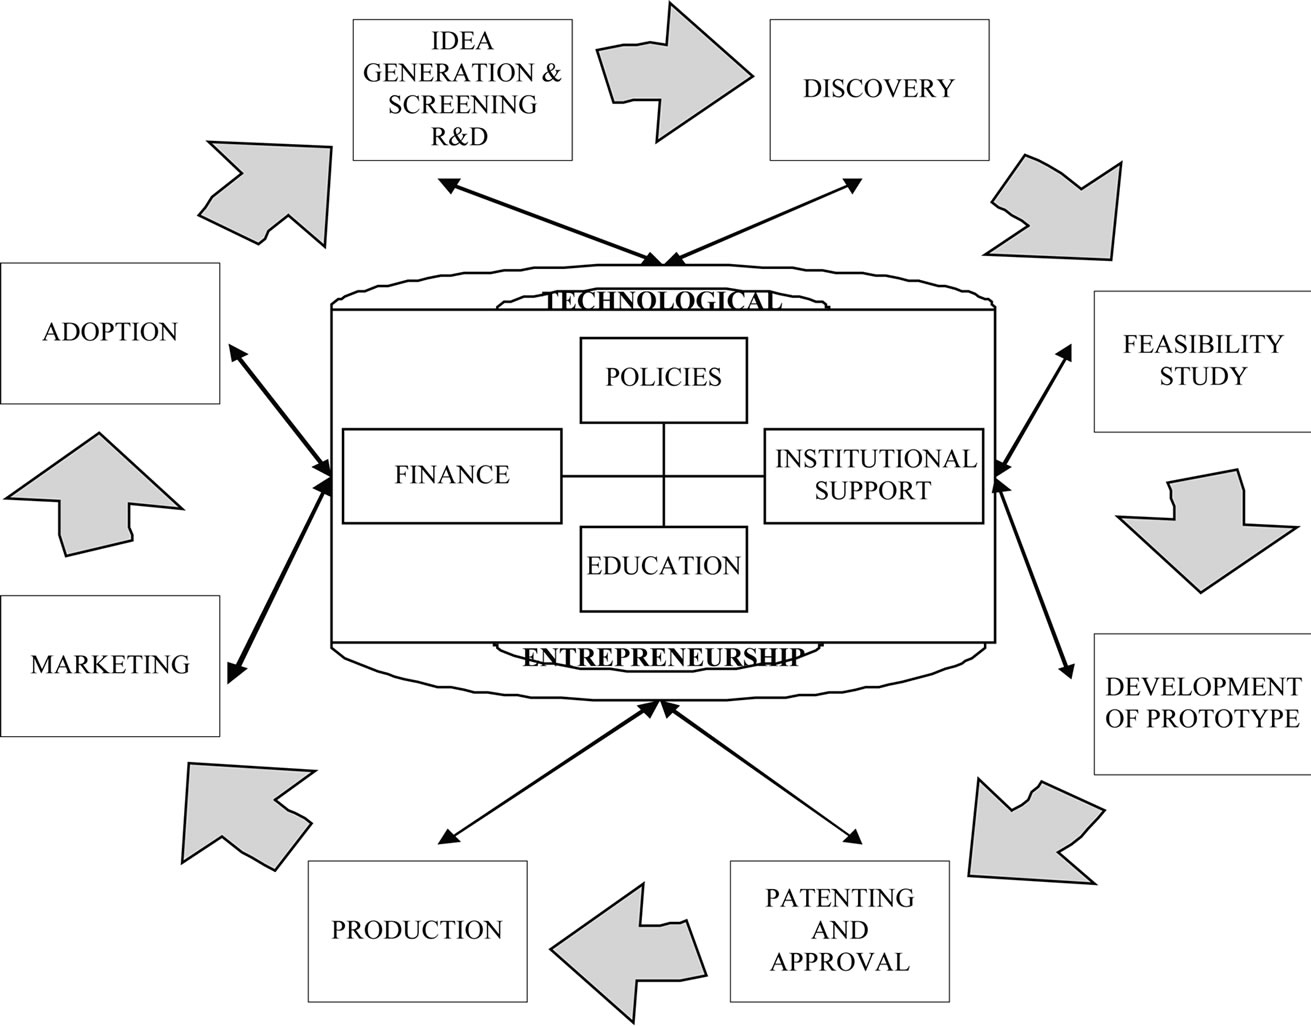 literature review of entrepreneurship This paper is a literature review of the theoretical field of corporate entrepreneurship as the term is growing in popularity previous research has seen the field as disparate and that the lack of consensus is evident only a few researchers have, more or less, focused on commonalities or similarities in this paper a.